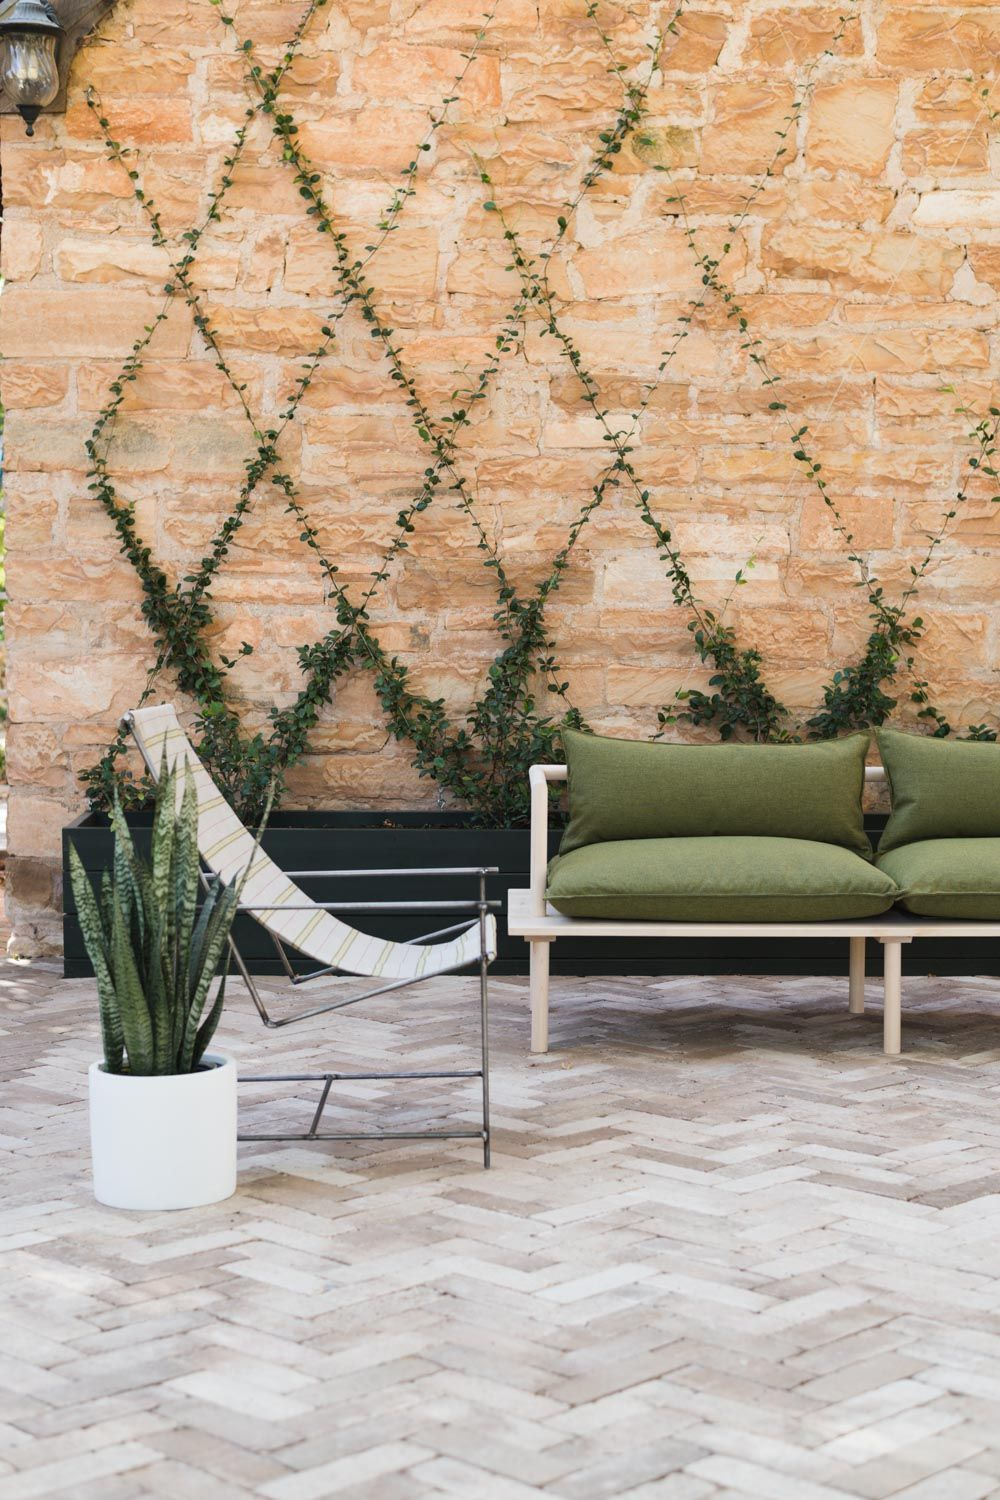 For DIY enthusiast Mandi Gubler, all it took to create an outdoor seating area was a little vision and some hard work. The good news, she's sharing her guide for creating an outdoor couch using Sunbrella with us! Check it out here.